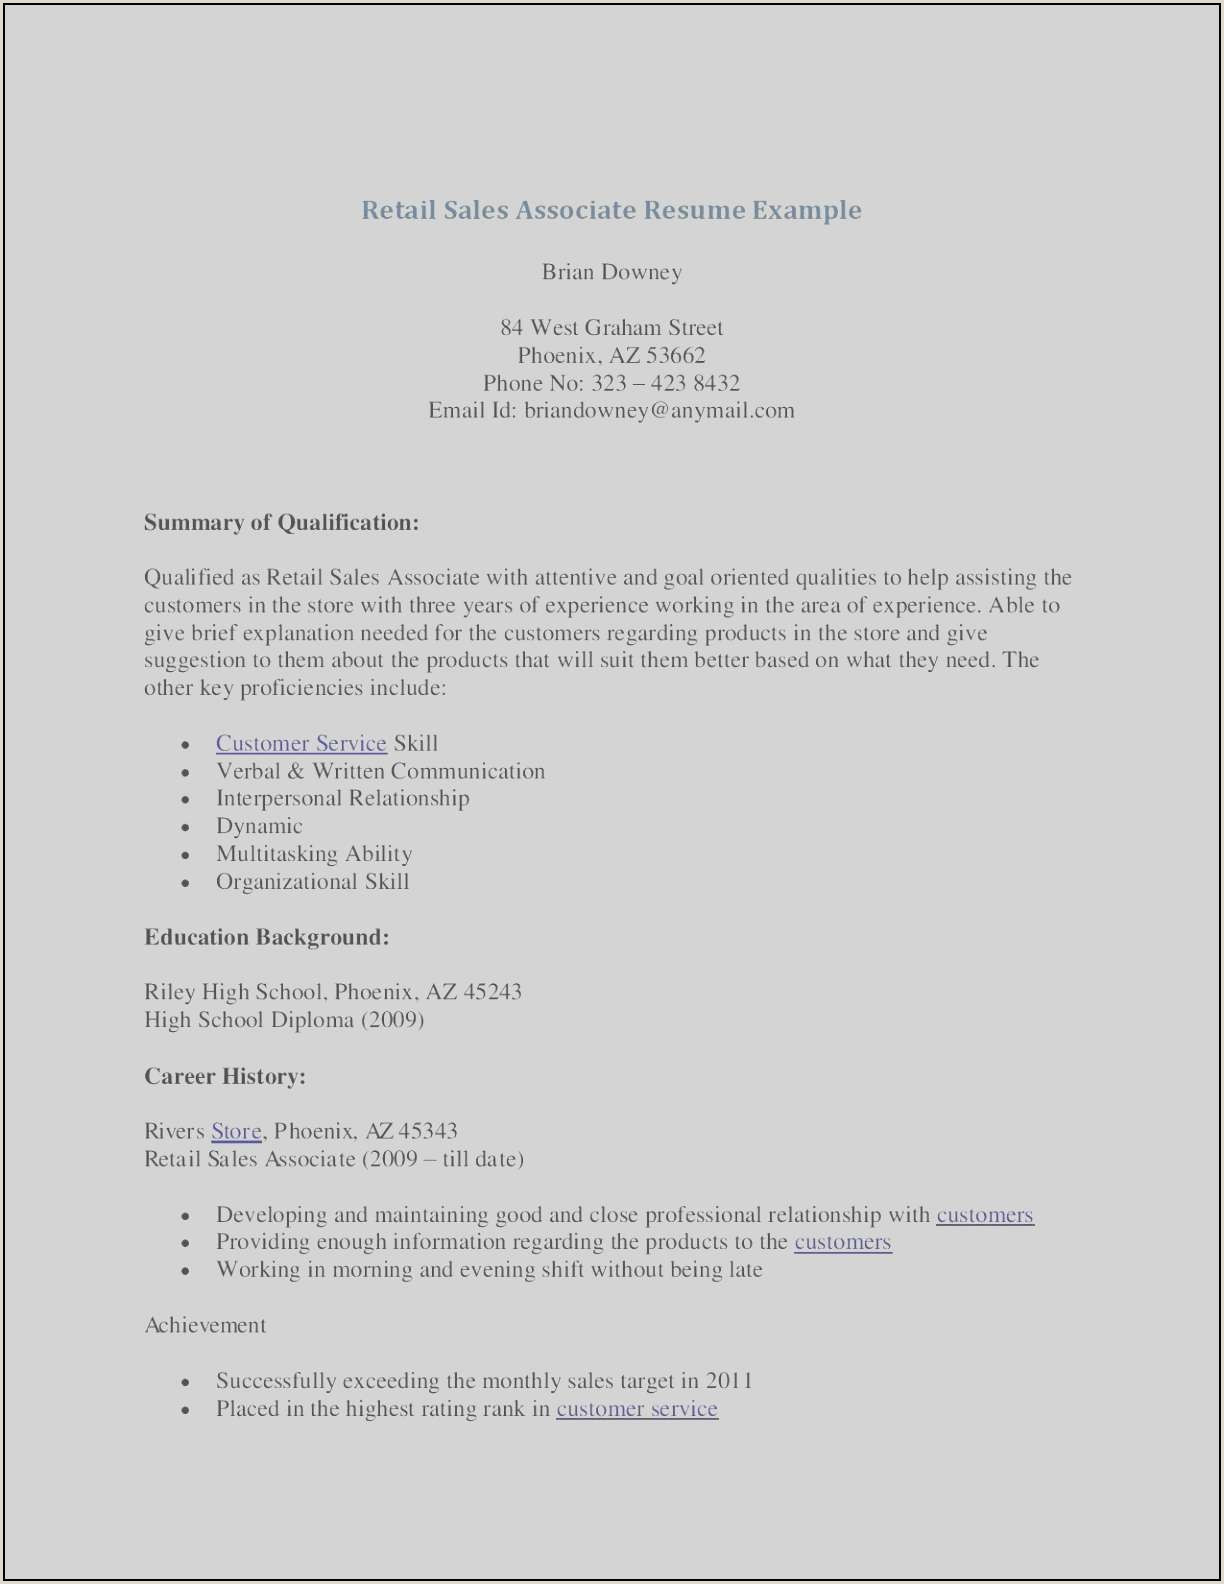 Resume for Retail associate 8 Resume Template Retail Sales Ideas